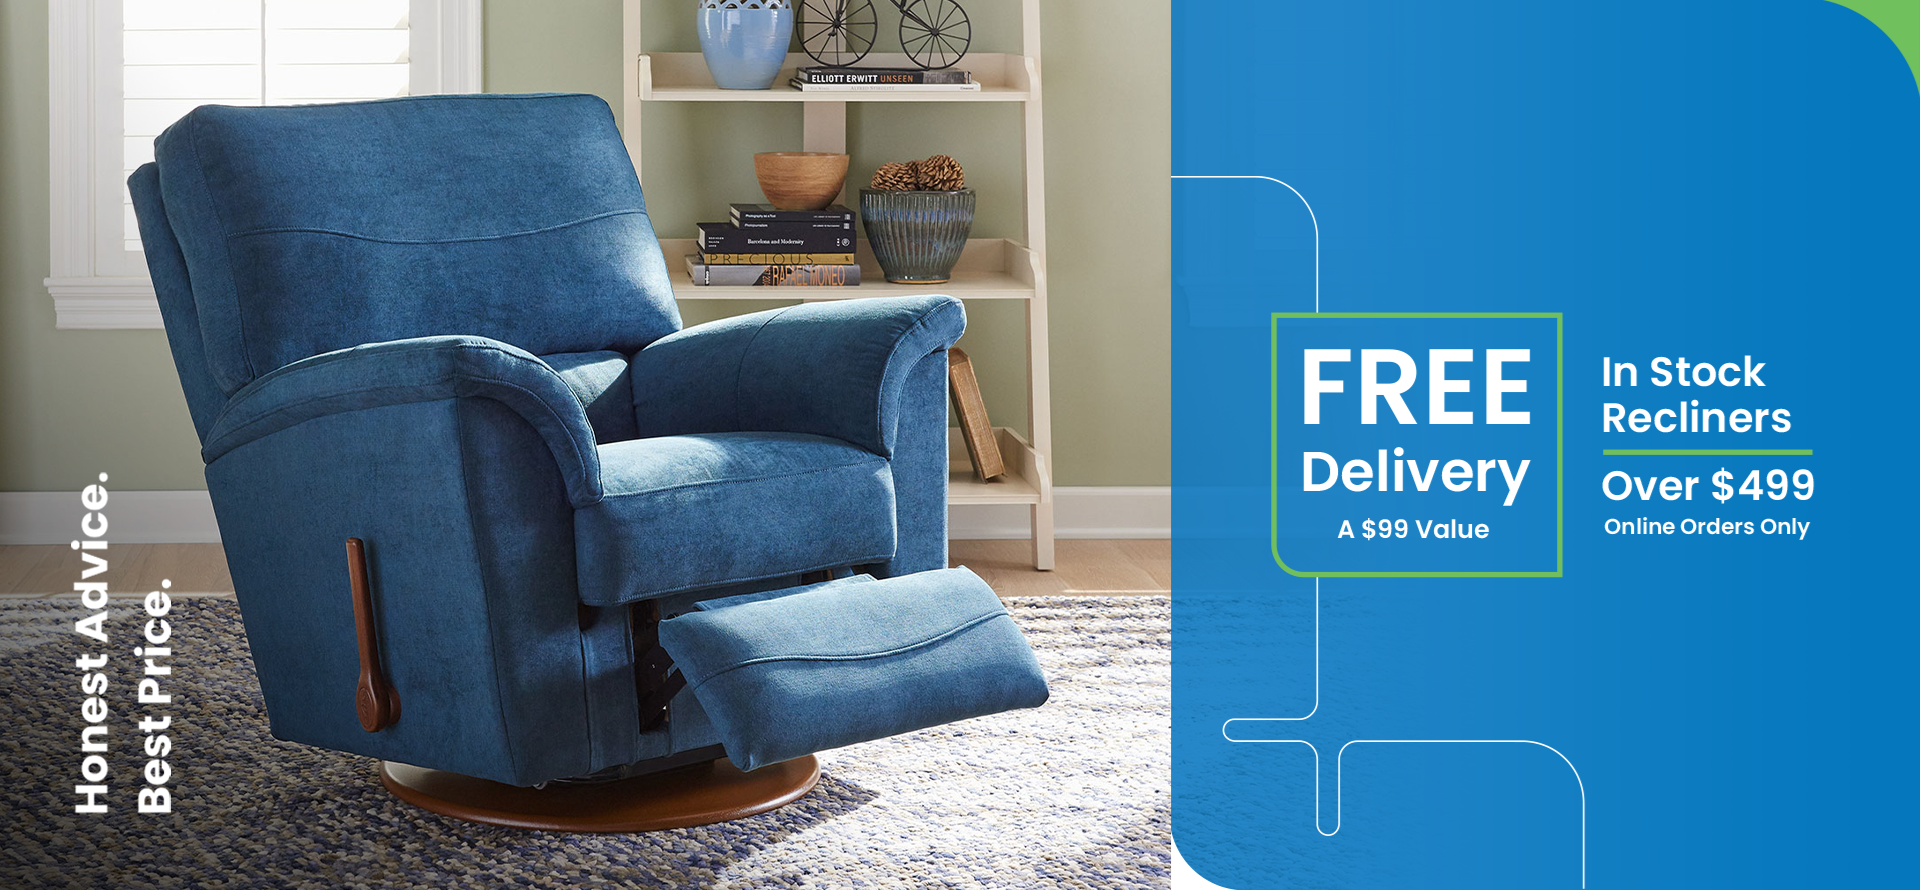 Free Delivery on In Stock Recliners Over $499